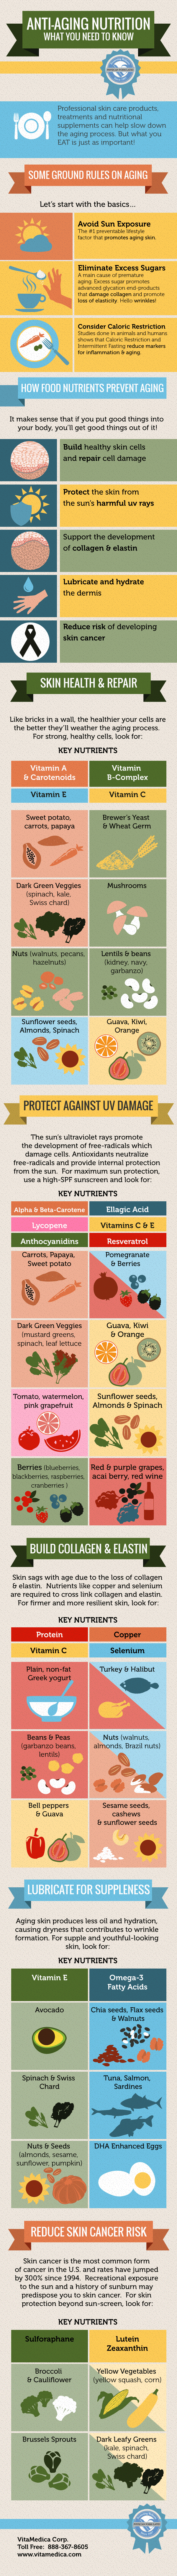 Anti-Aging Nutrition - What You Need to Know (INFOGRAPHIC)